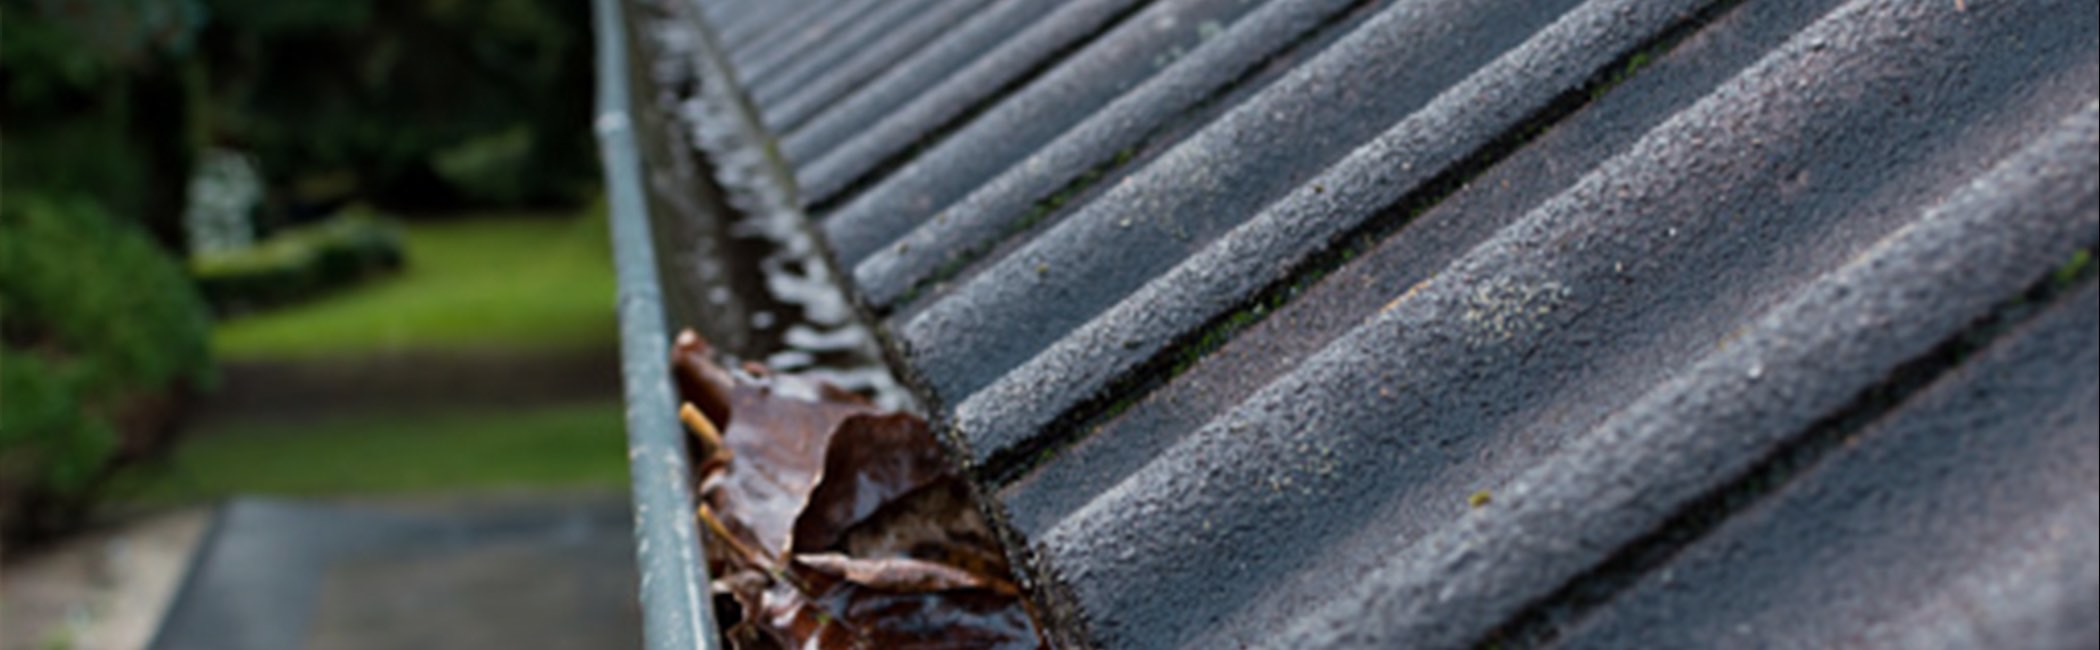 Novalis Roofing and Siding | Novalis Gutter Cleaning Services